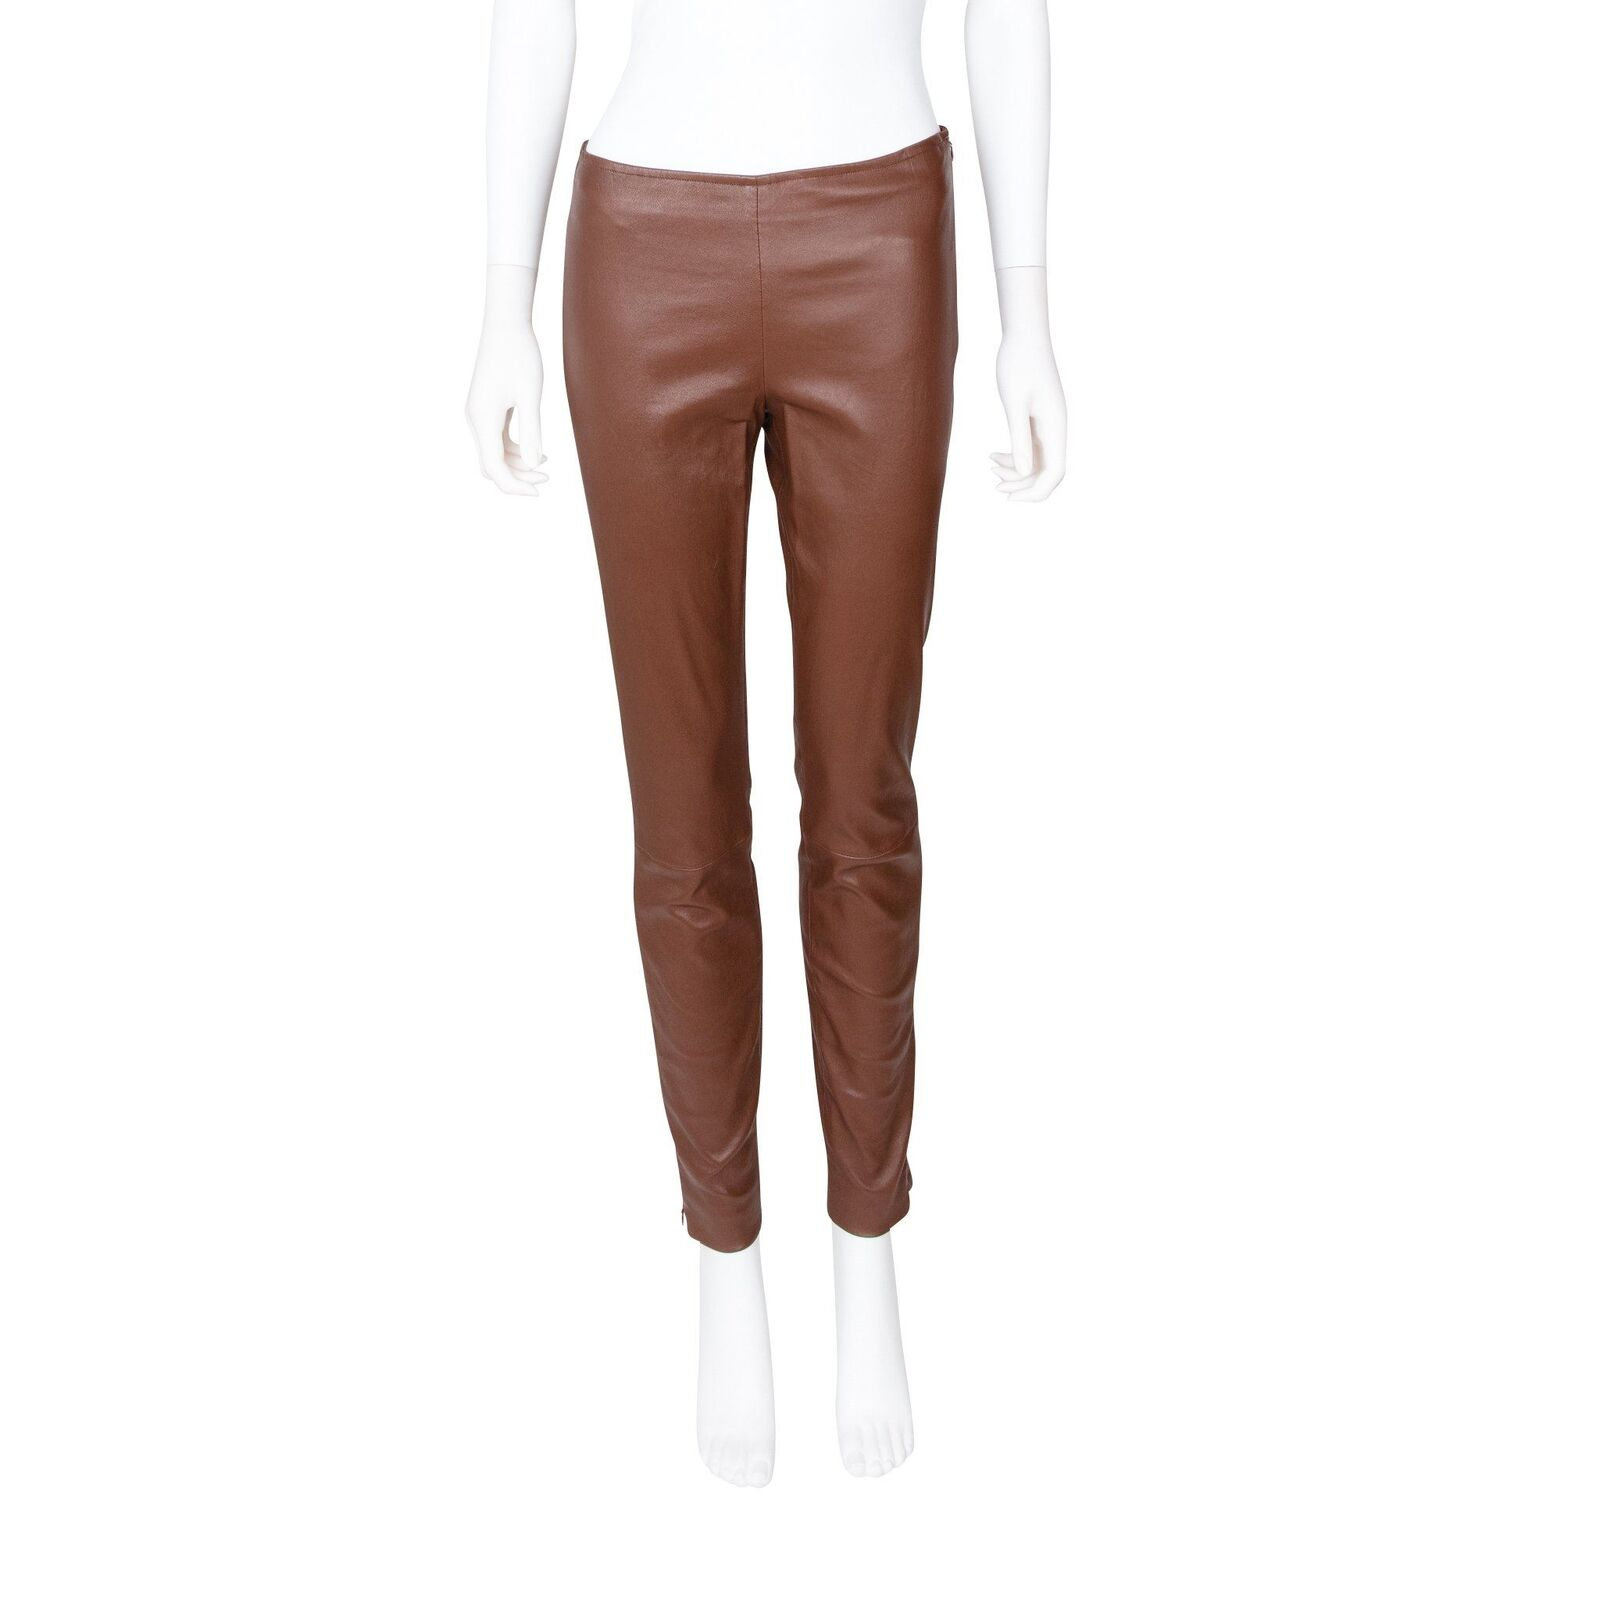 The Row Brown Leather Leggings - Size 4